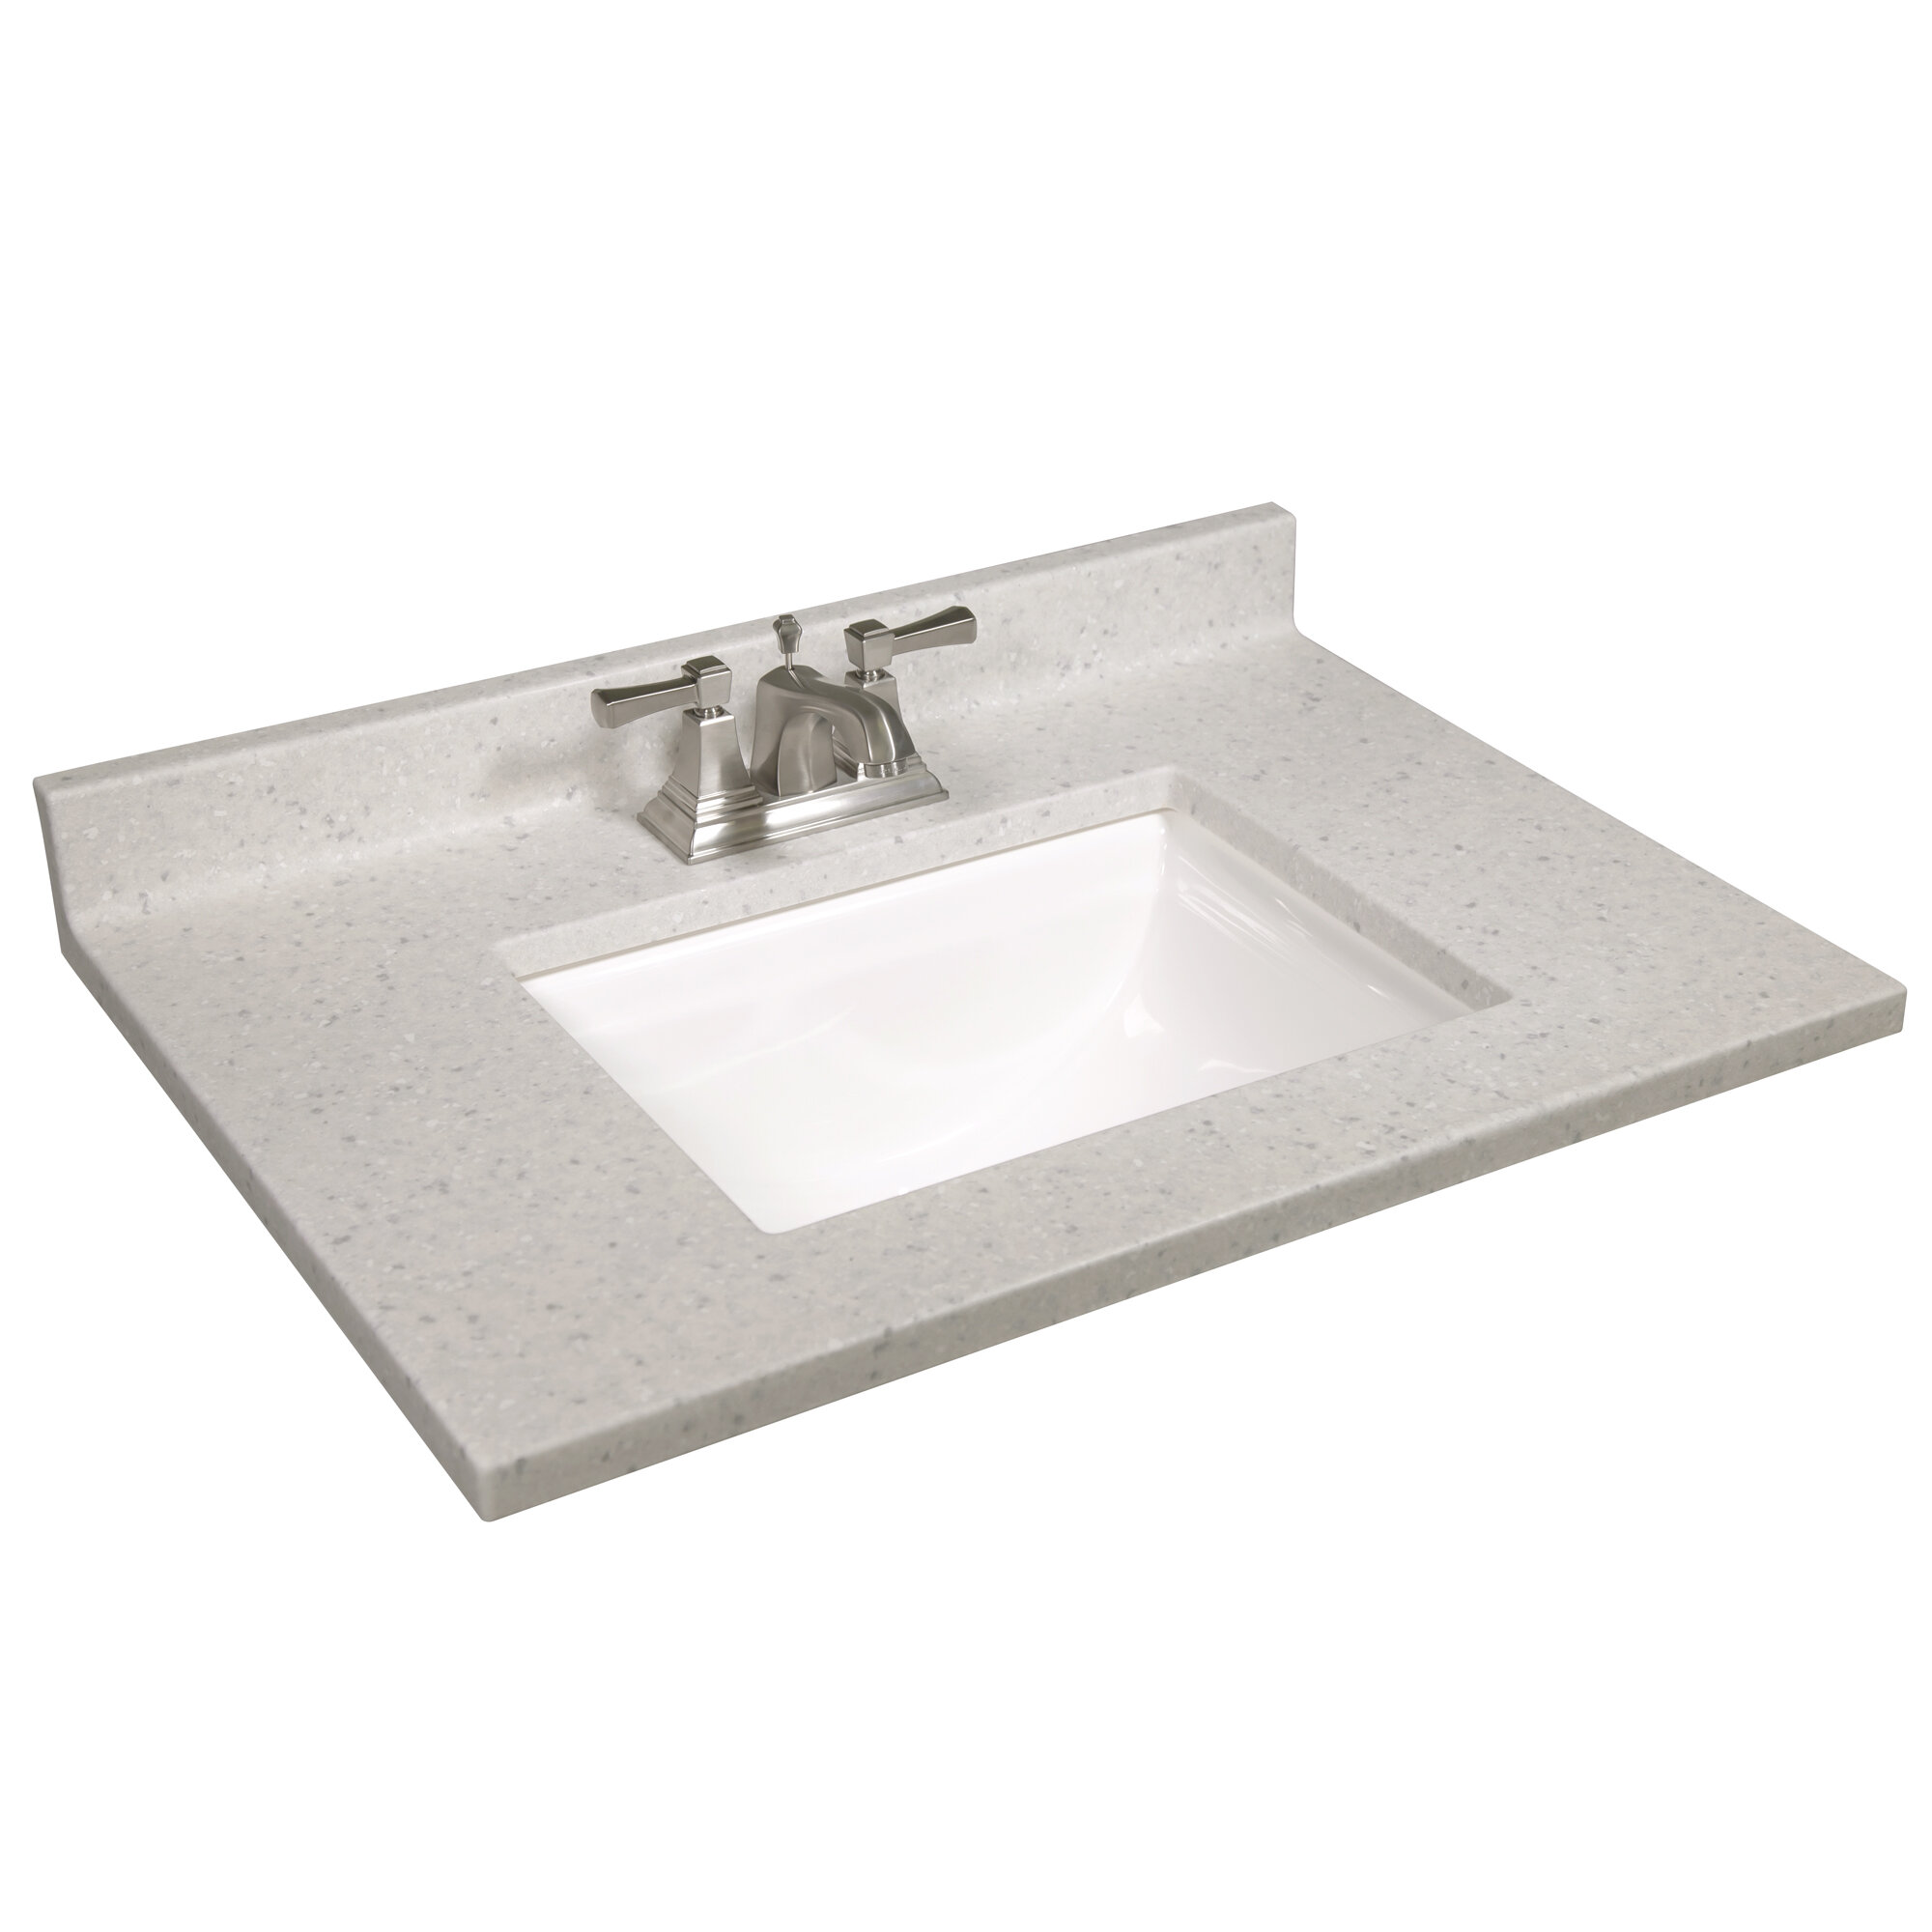 Design House 31 In W Cultured Marble Vanity Top In Frost With Solid White Basin And 4 In Faucet Spread